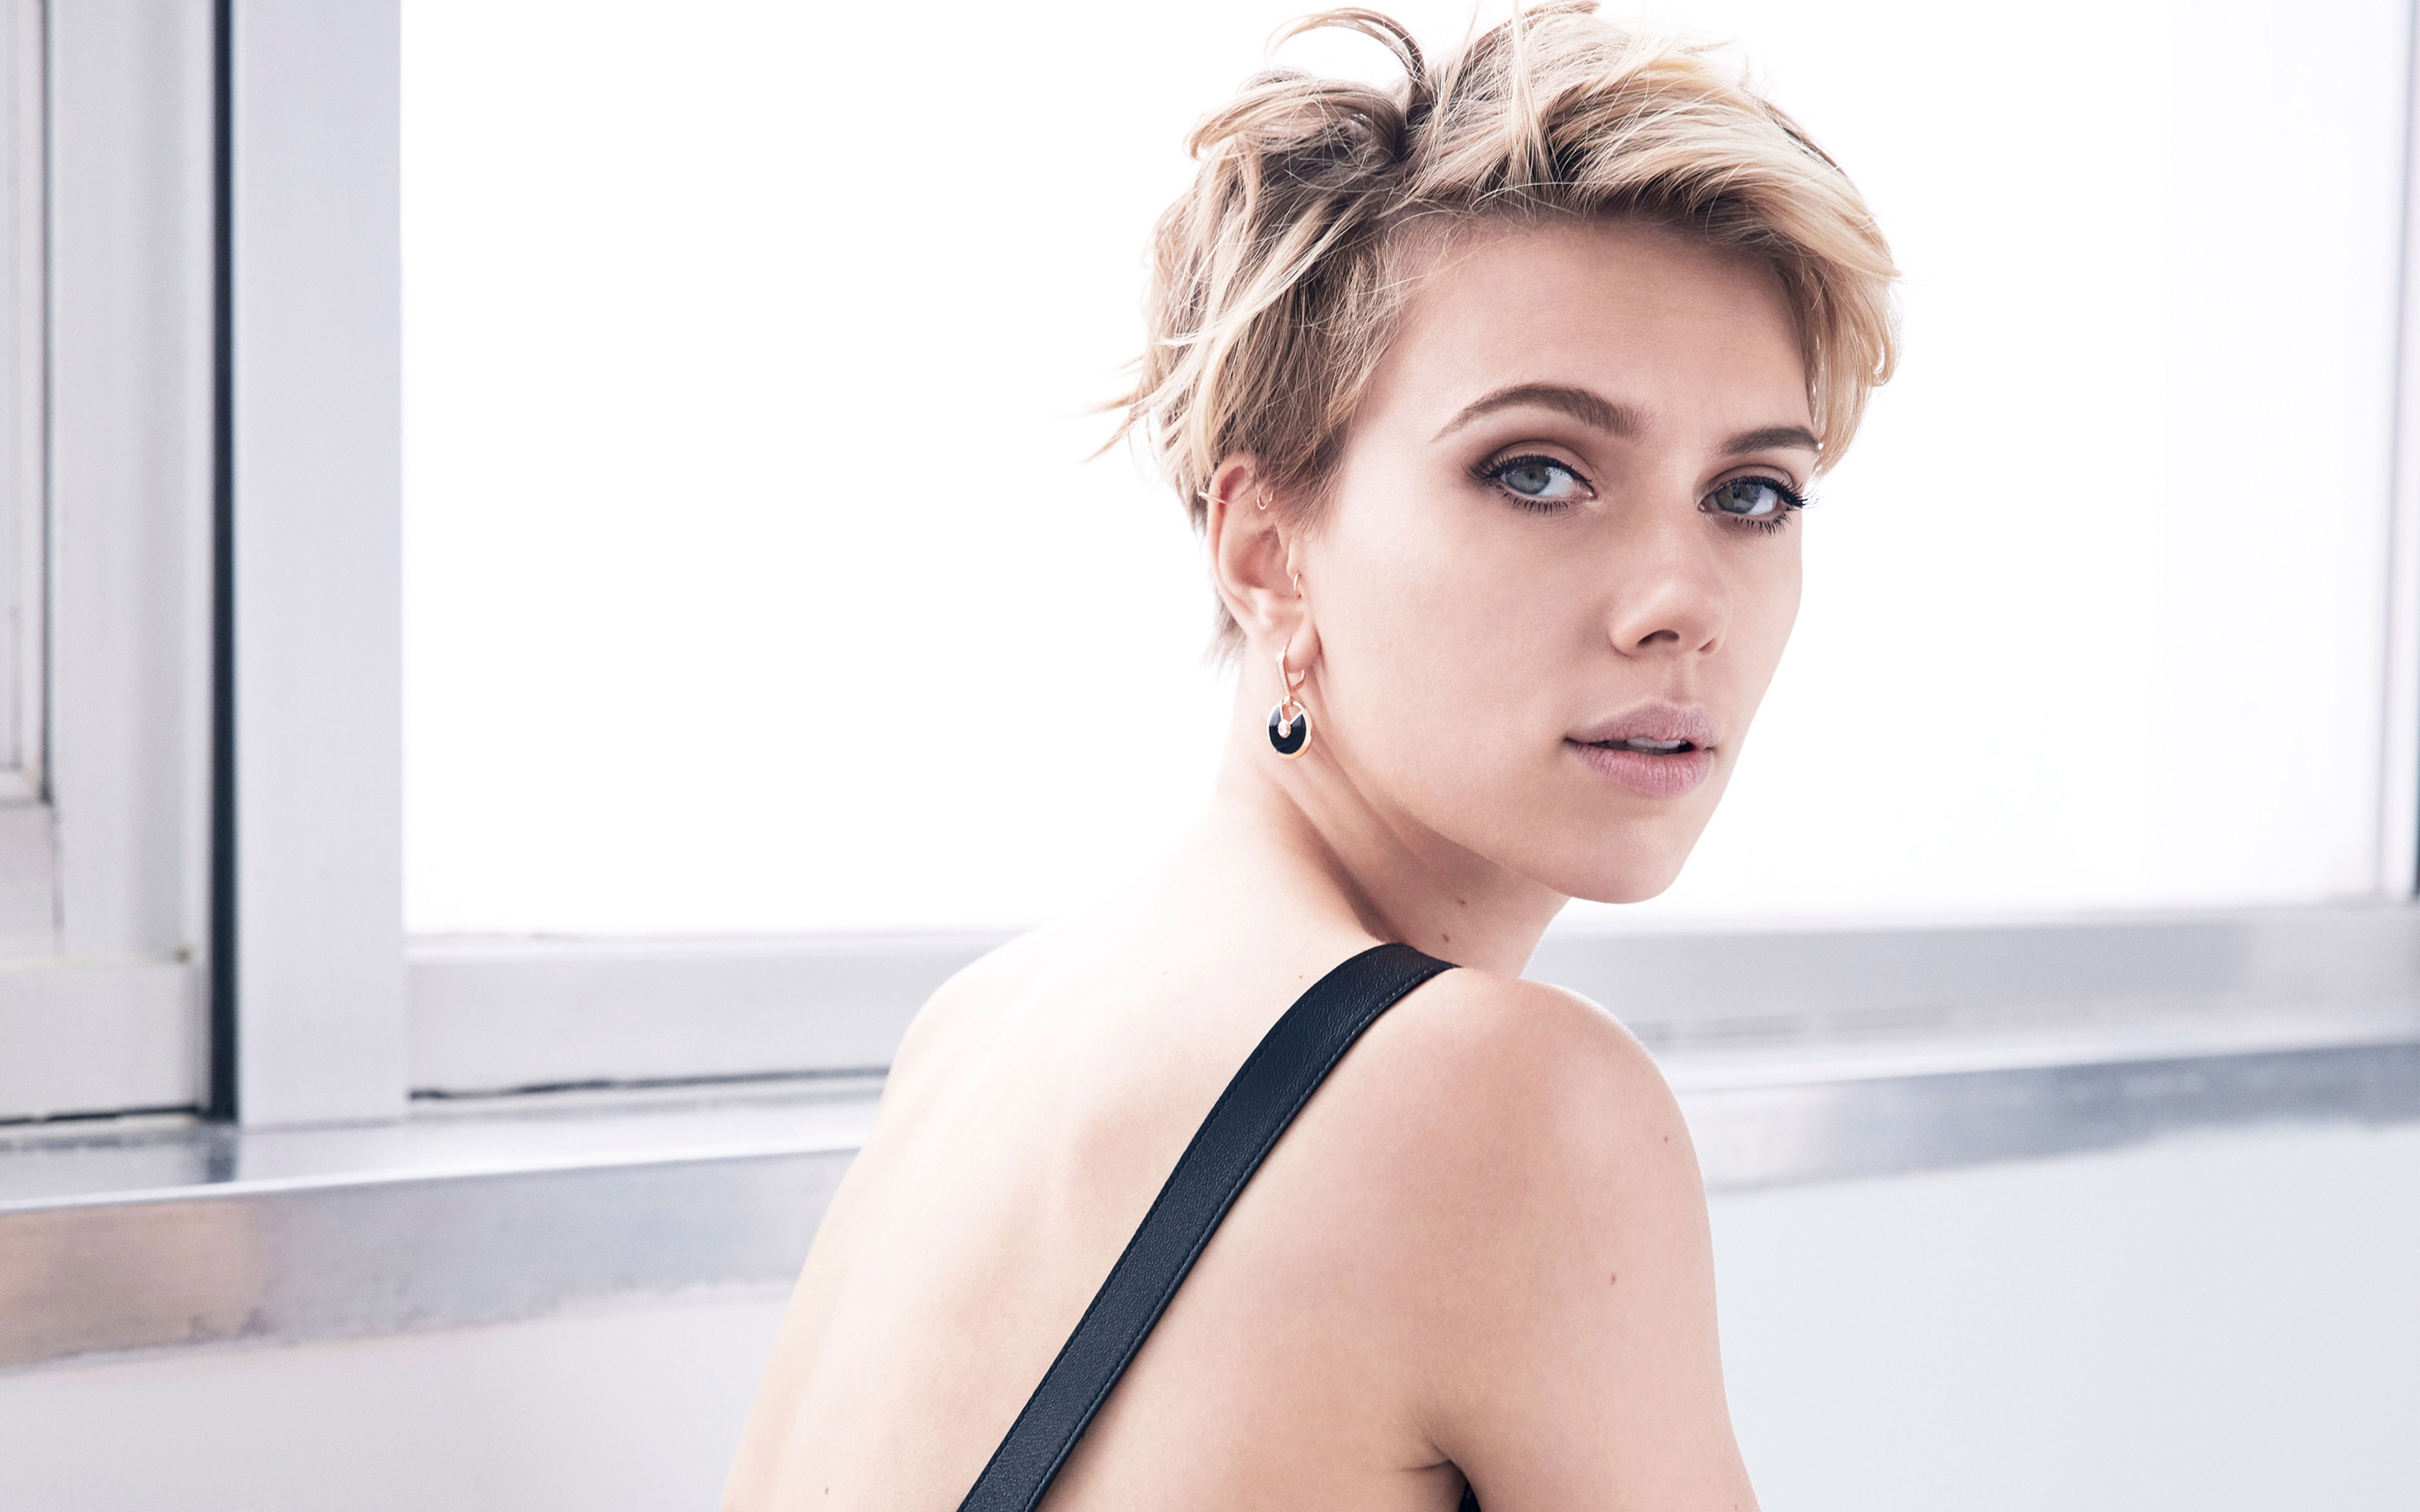 Actress Scarlett Johansson With A Short Haircut Wallpapers And Within Scarlett Johansson Short Haircuts (Gallery 22 of 25)